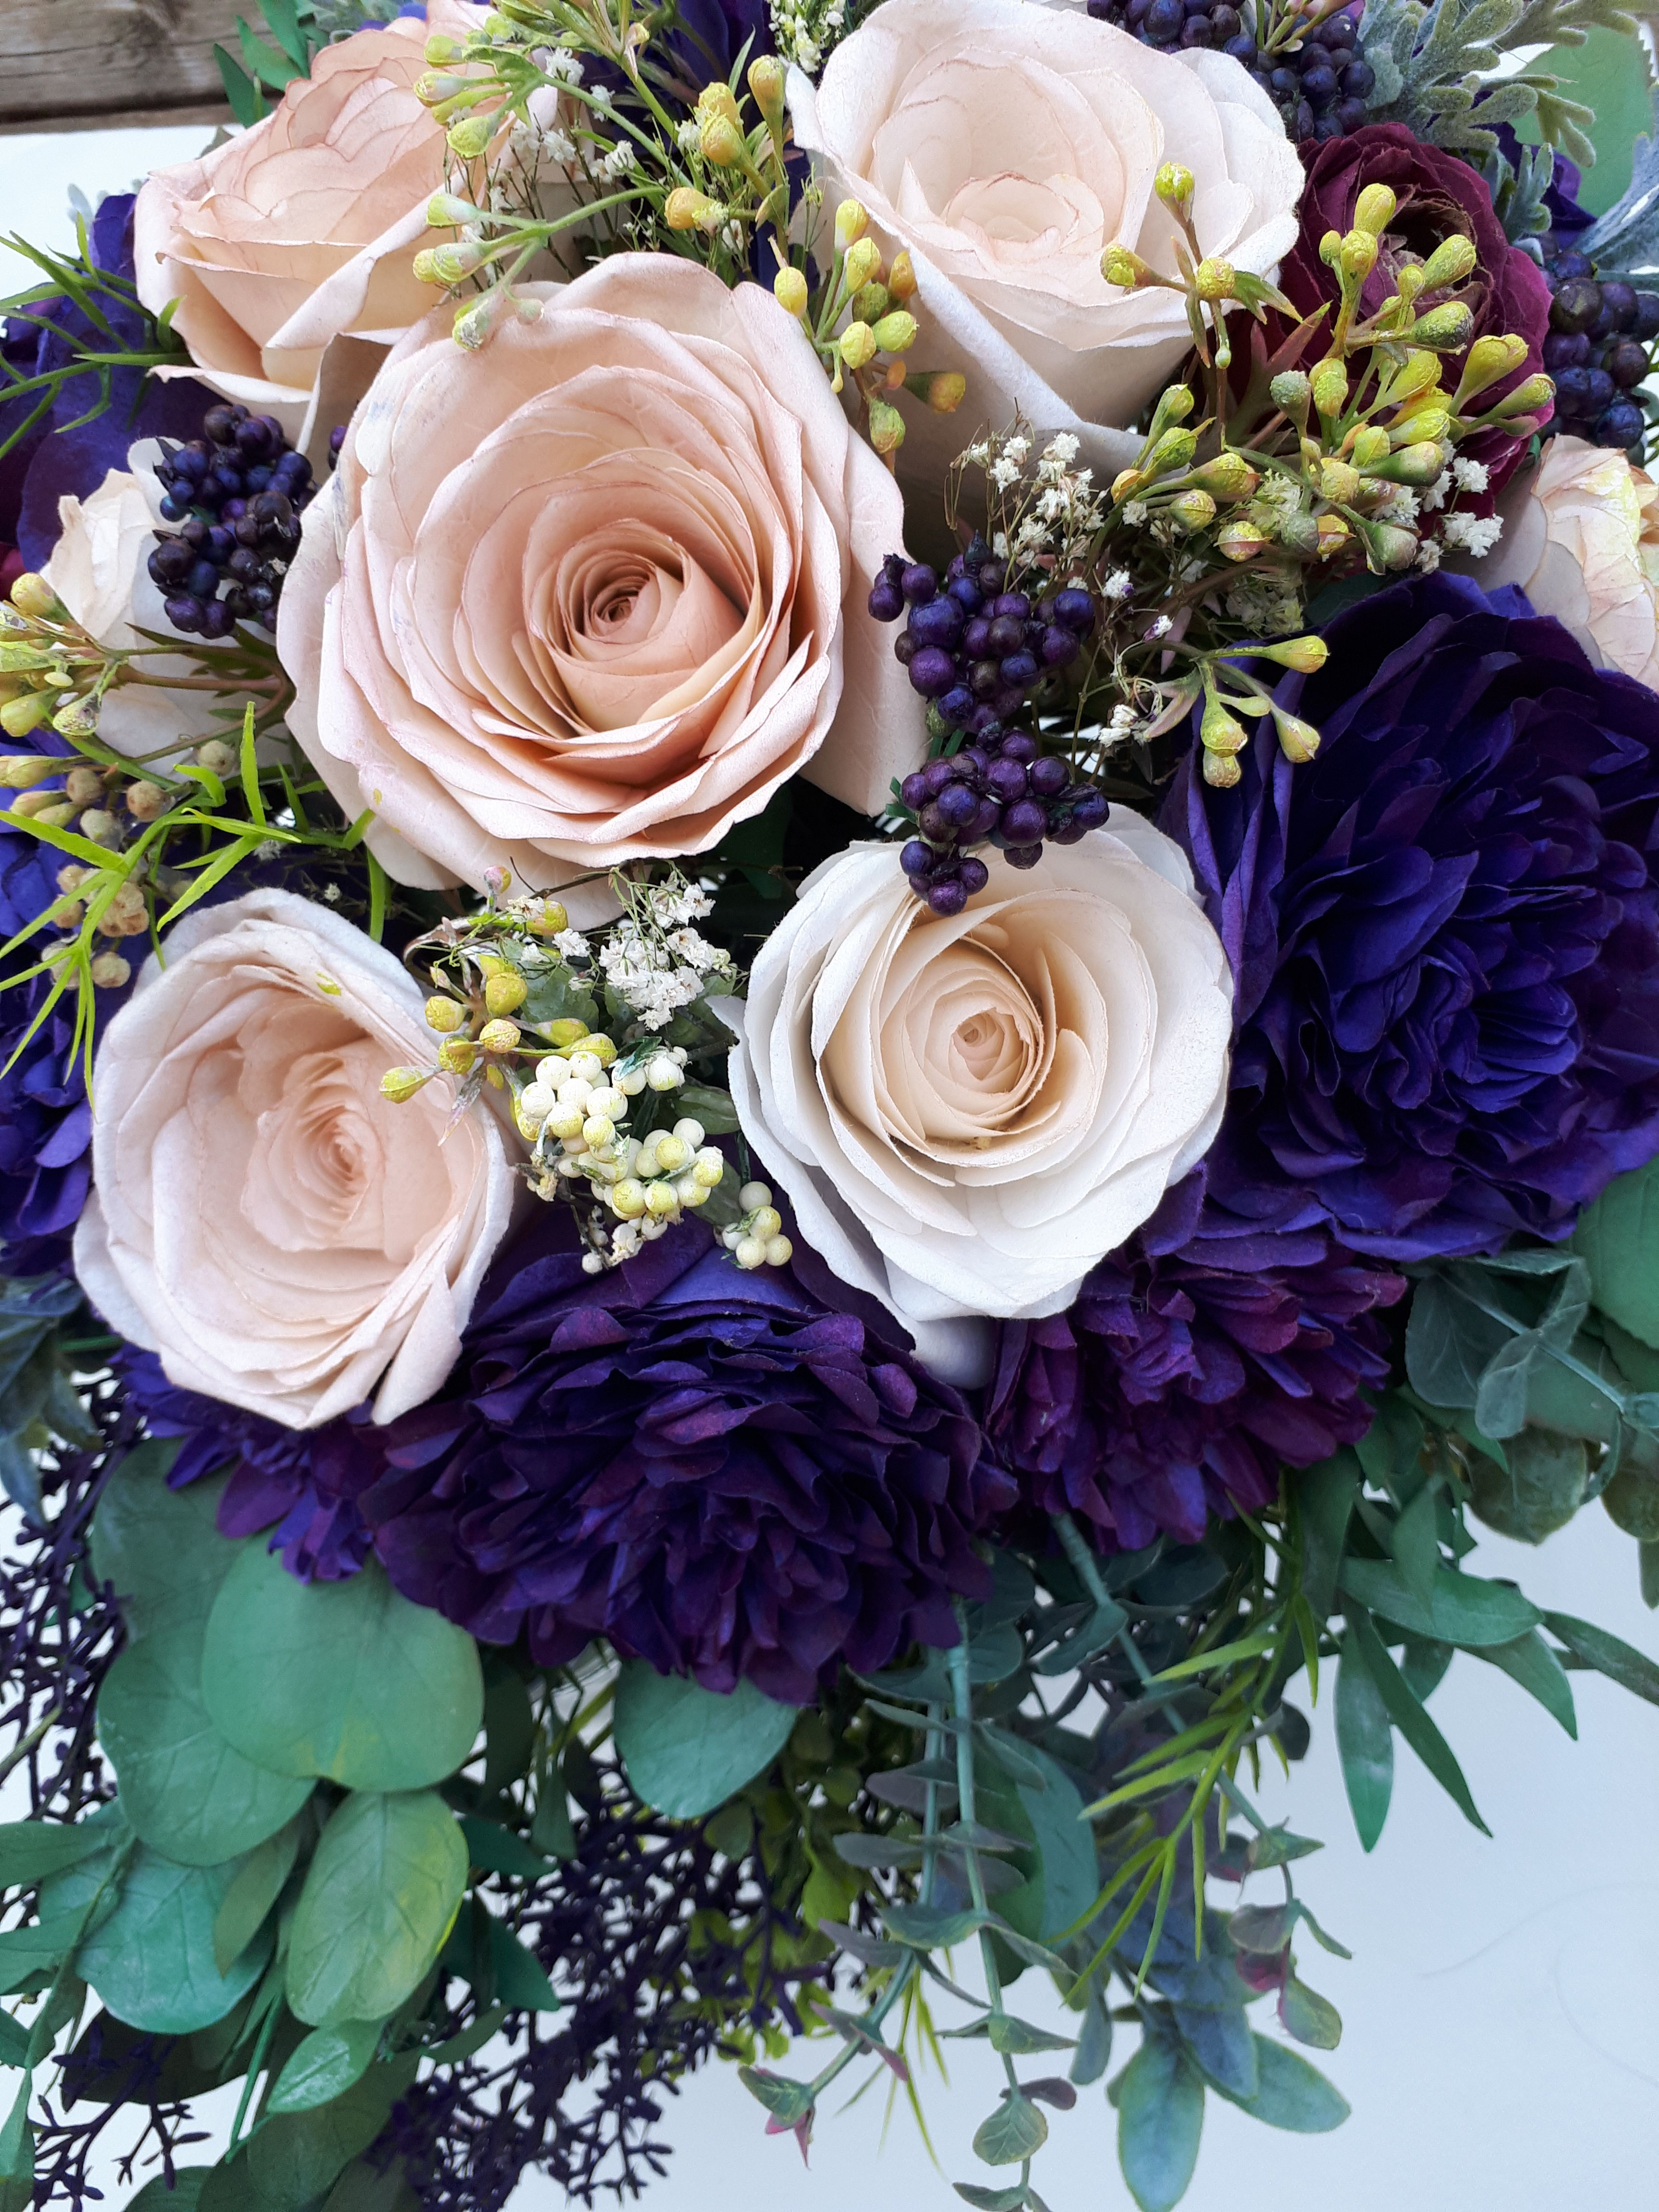 Pin by roses n lace studio on paper flower bouquets pinterest handcrafted paper brides bouquet made from crepe coffee filter paper izmirmasajfo